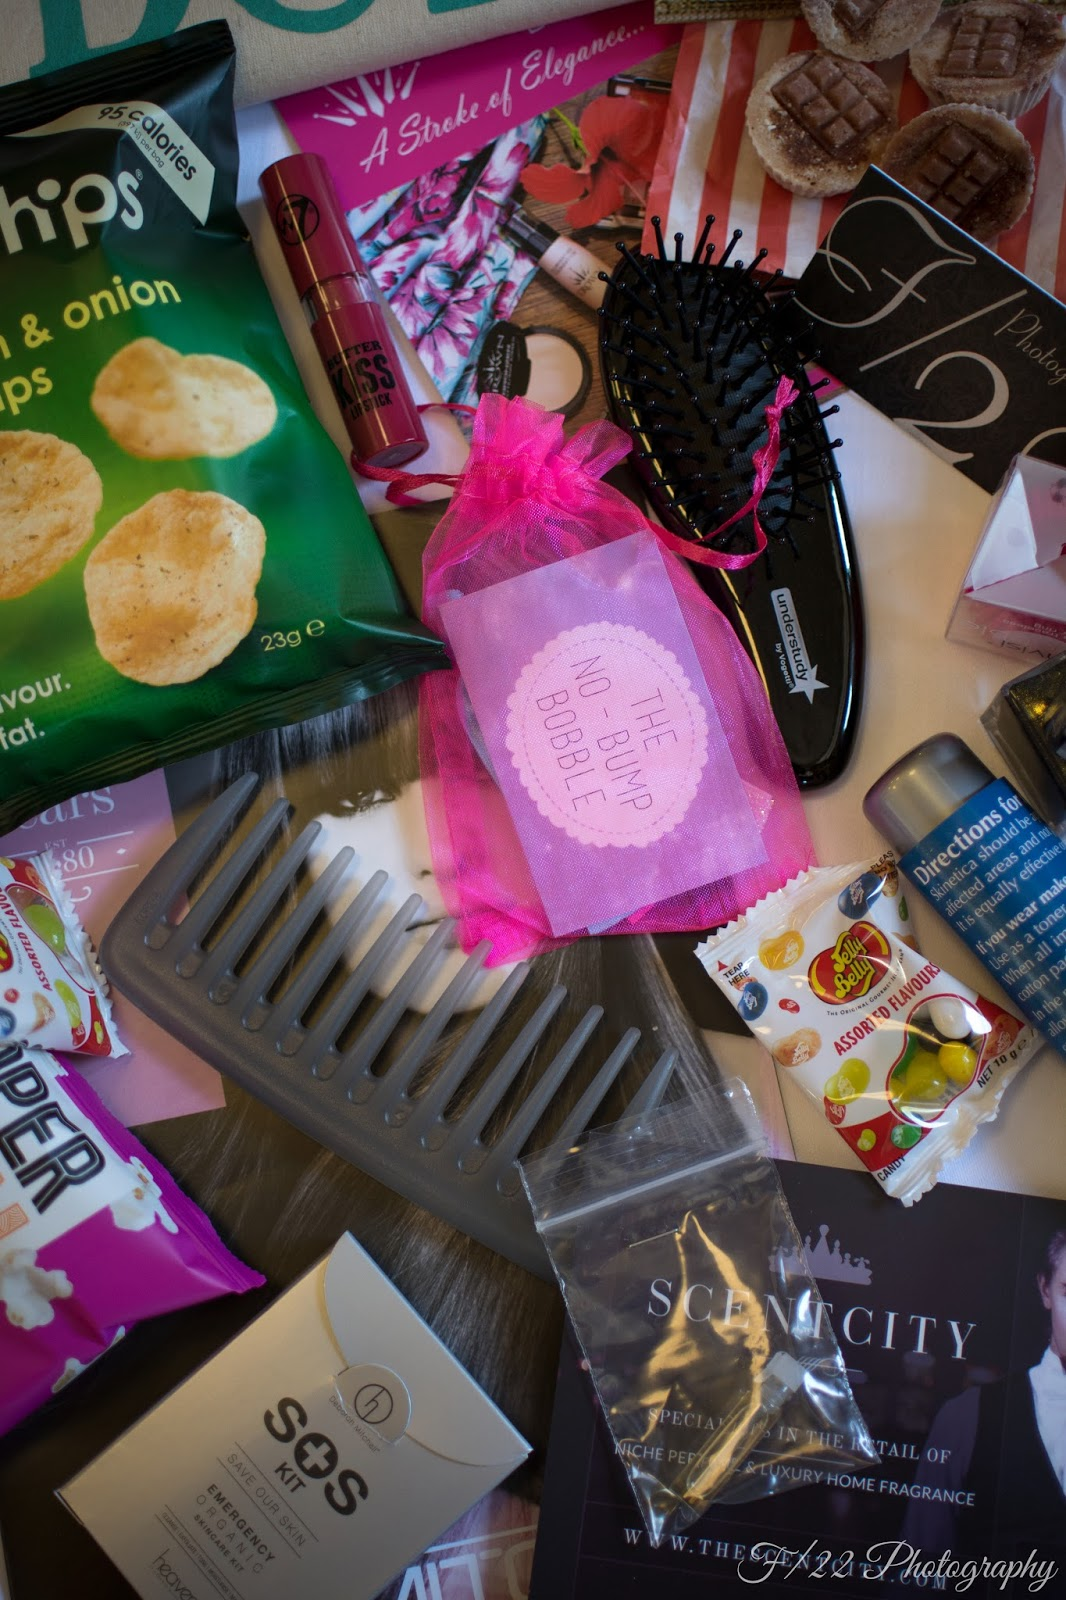 goody bag at the Big Blogger Conference London